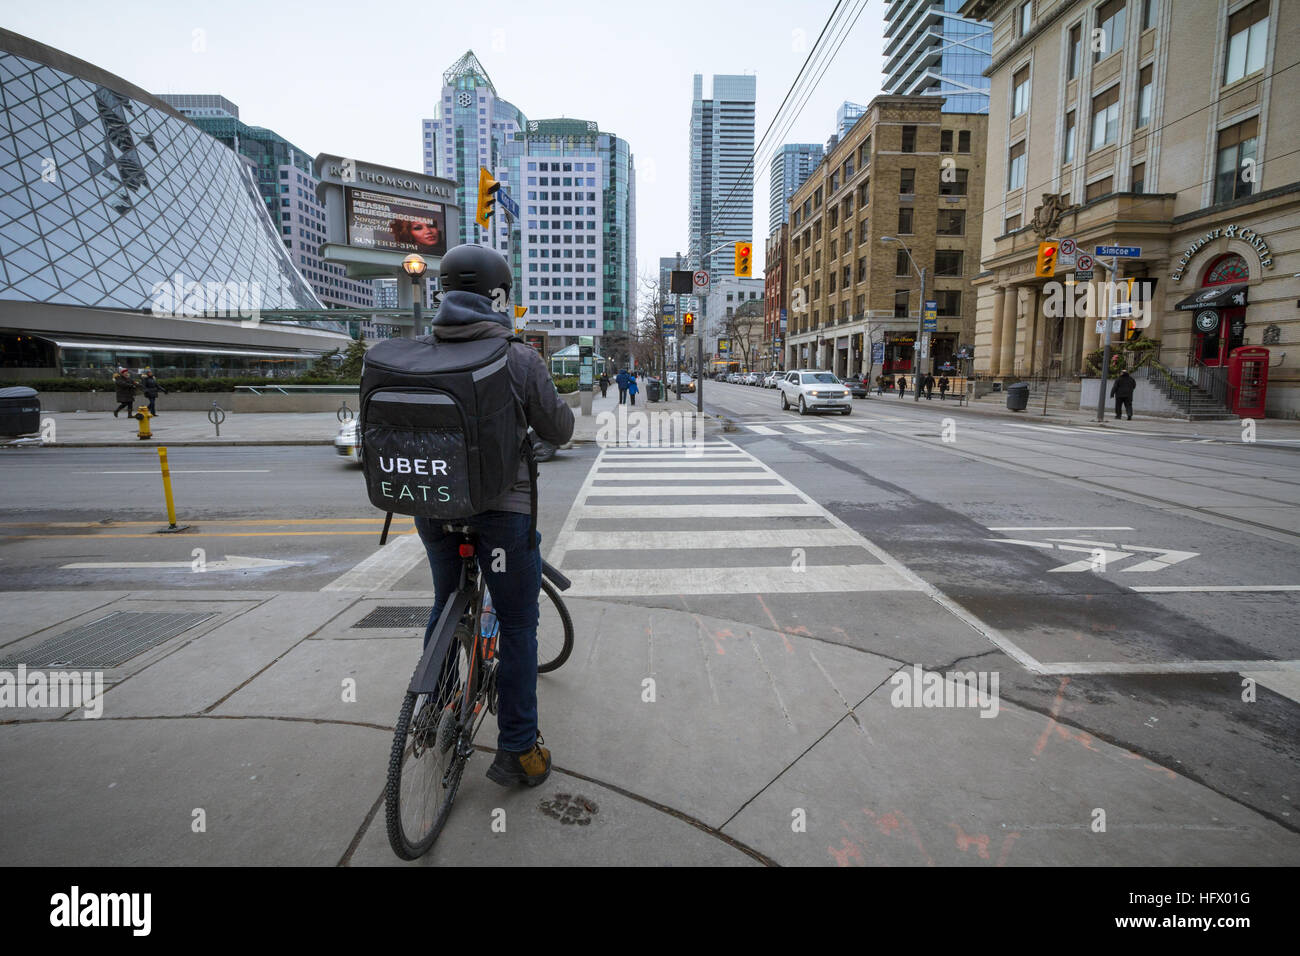 TORONTO, CANADA - DECEMBER 31, 2016: Uber Eats delivery man on a bicycle waiting to cross a street - Stock Image